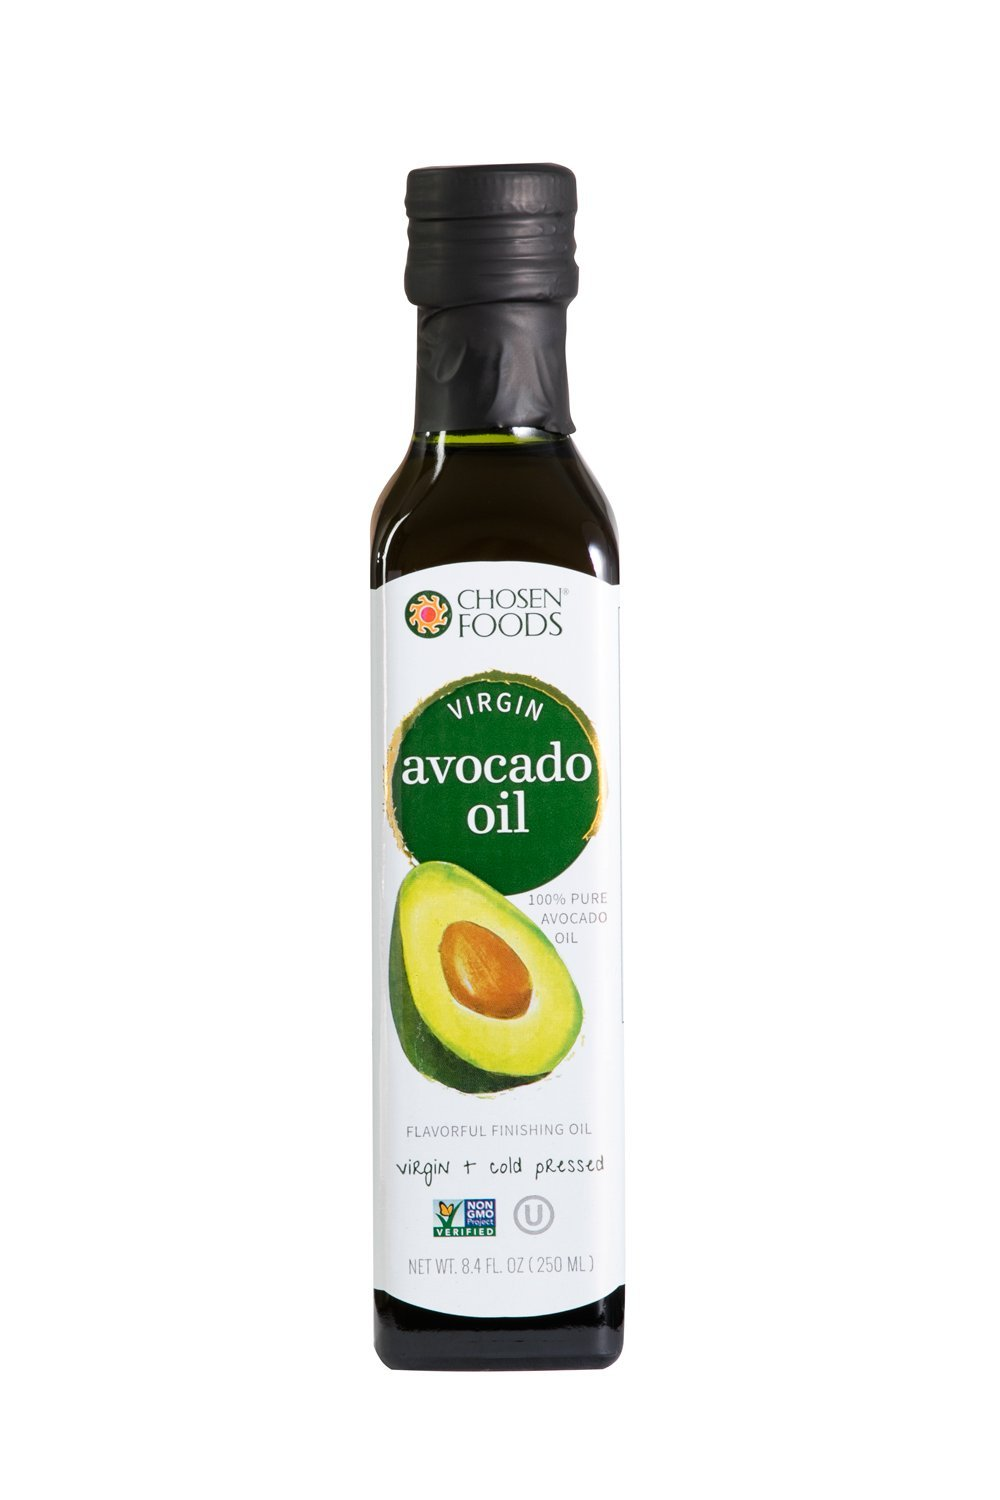 Chosen Foods Extra Virgin Avocado Oil